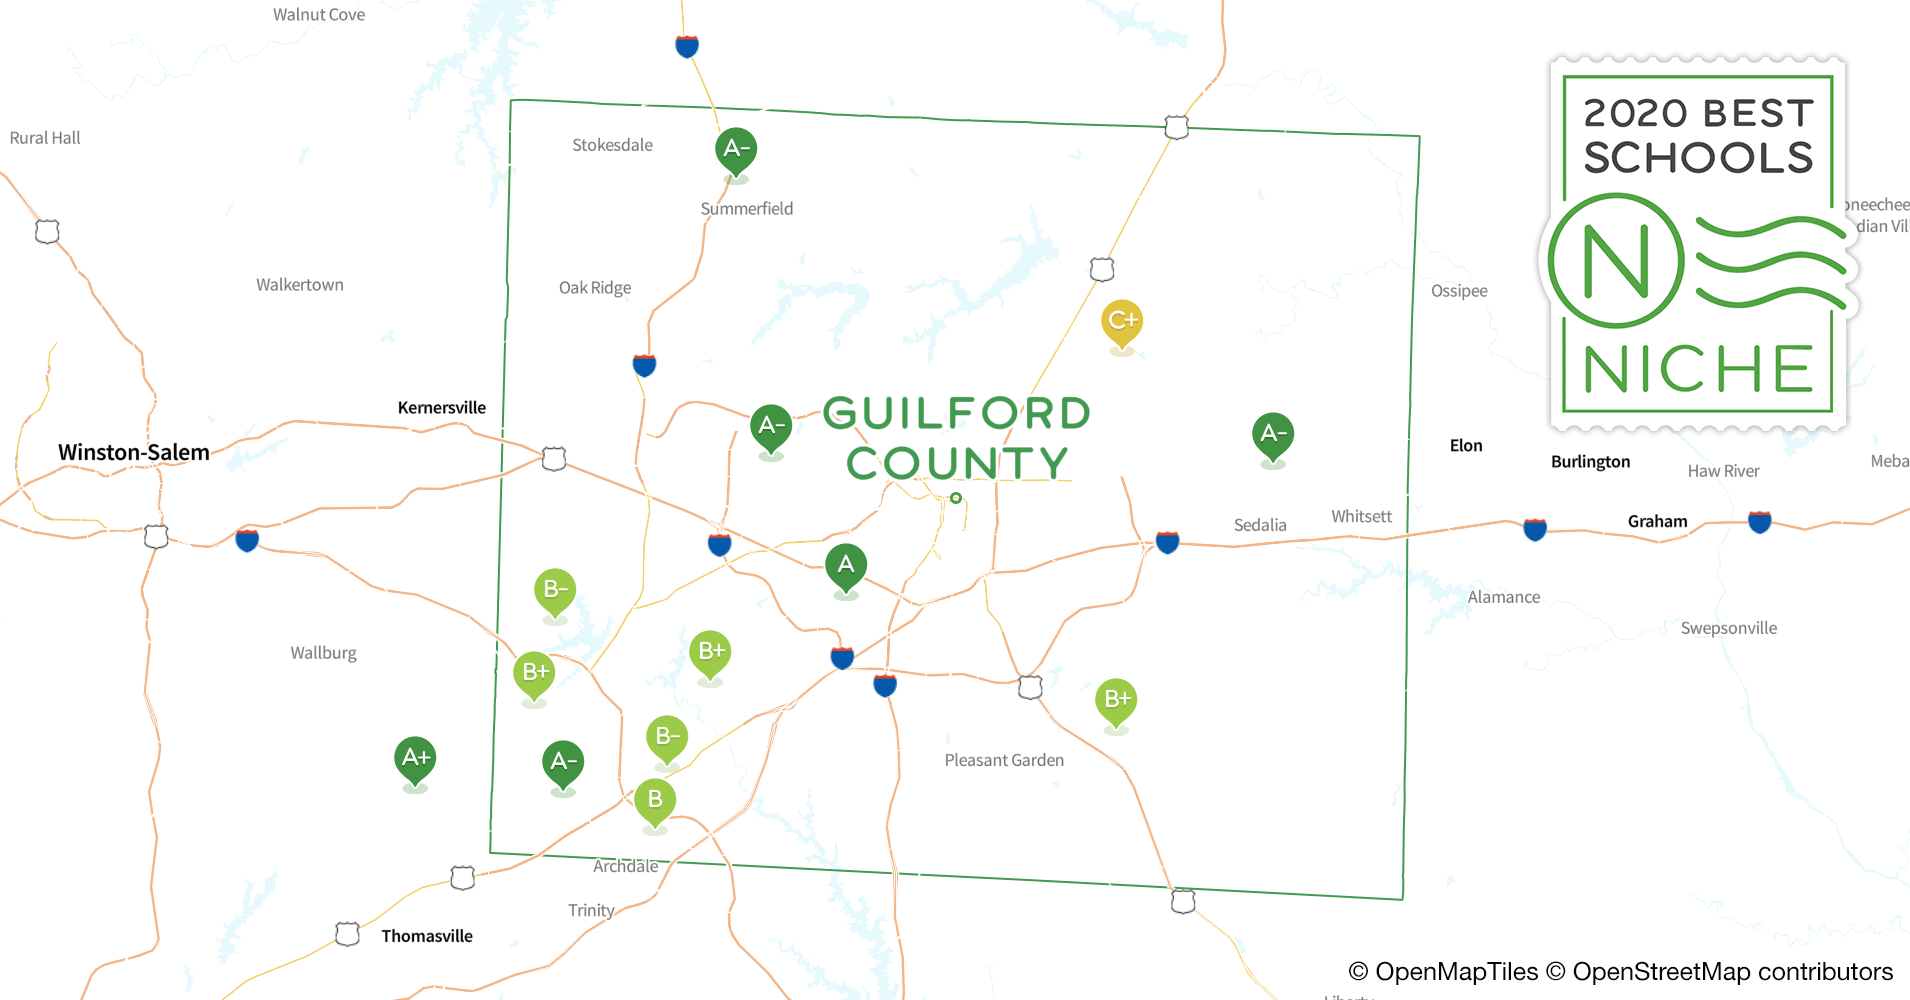 2020 Best Public Elementary Schools in Guilford County, NC